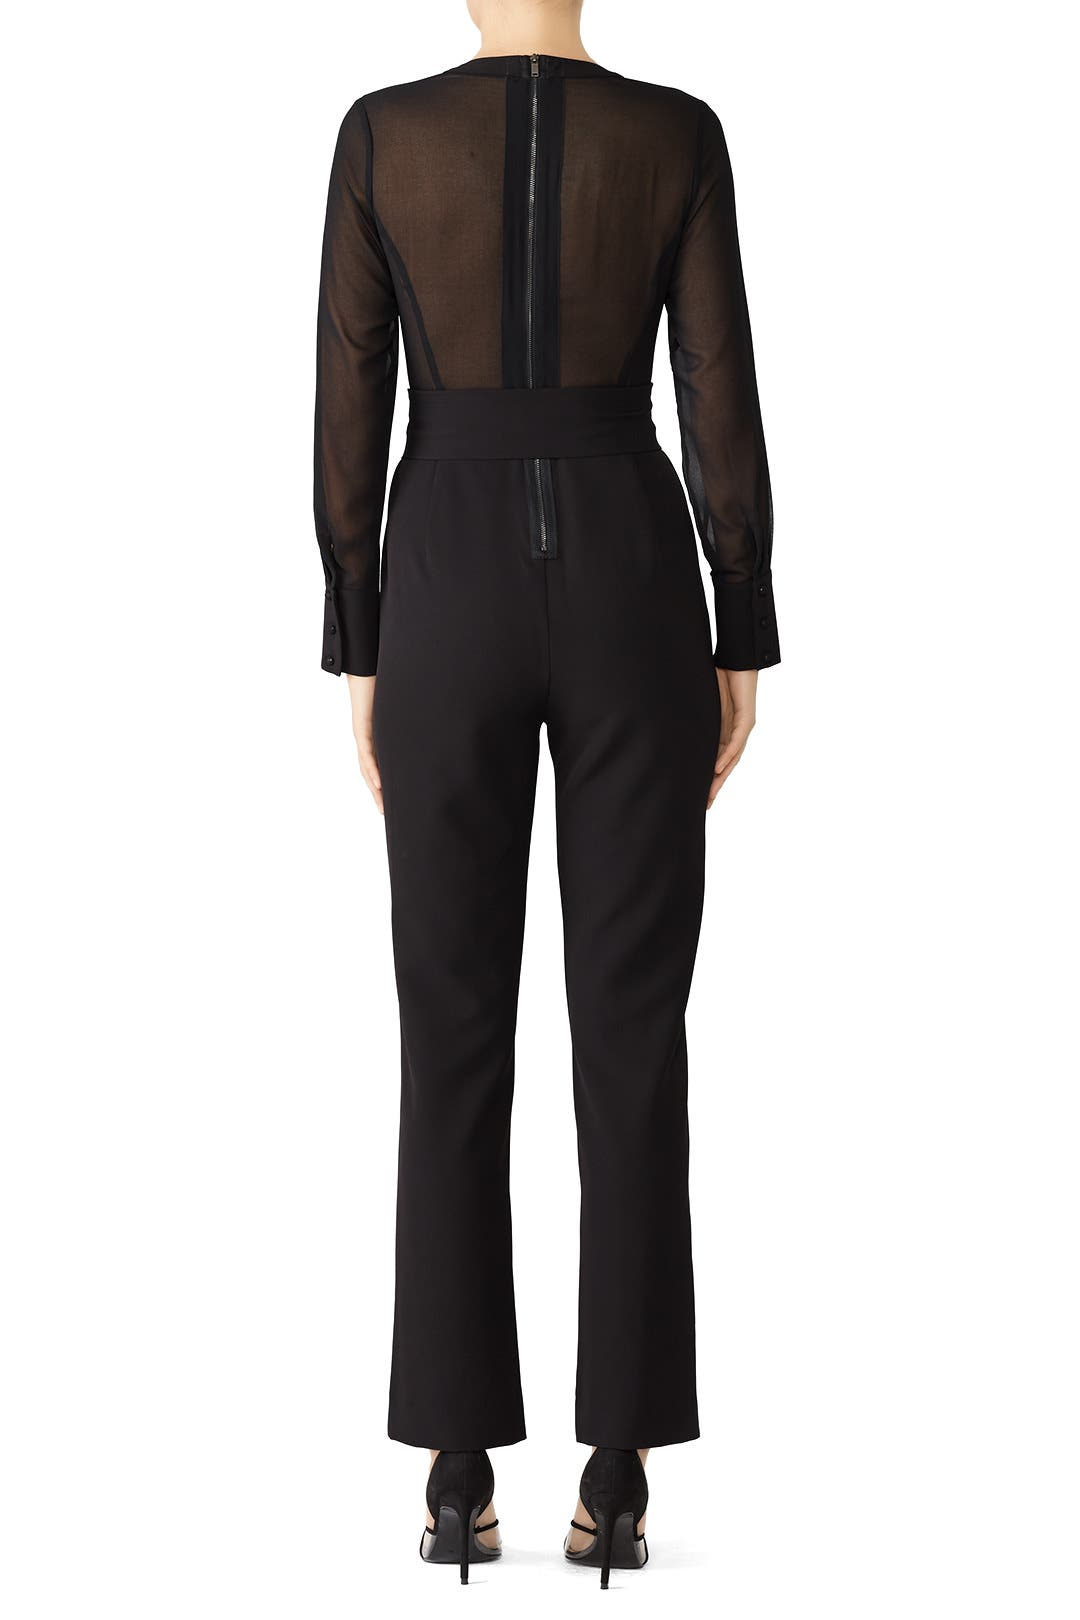 65c600498f7 Chiffon Sleeve Jumpsuit by RACHEL ROY COLLECTION for  30 -  40 ...